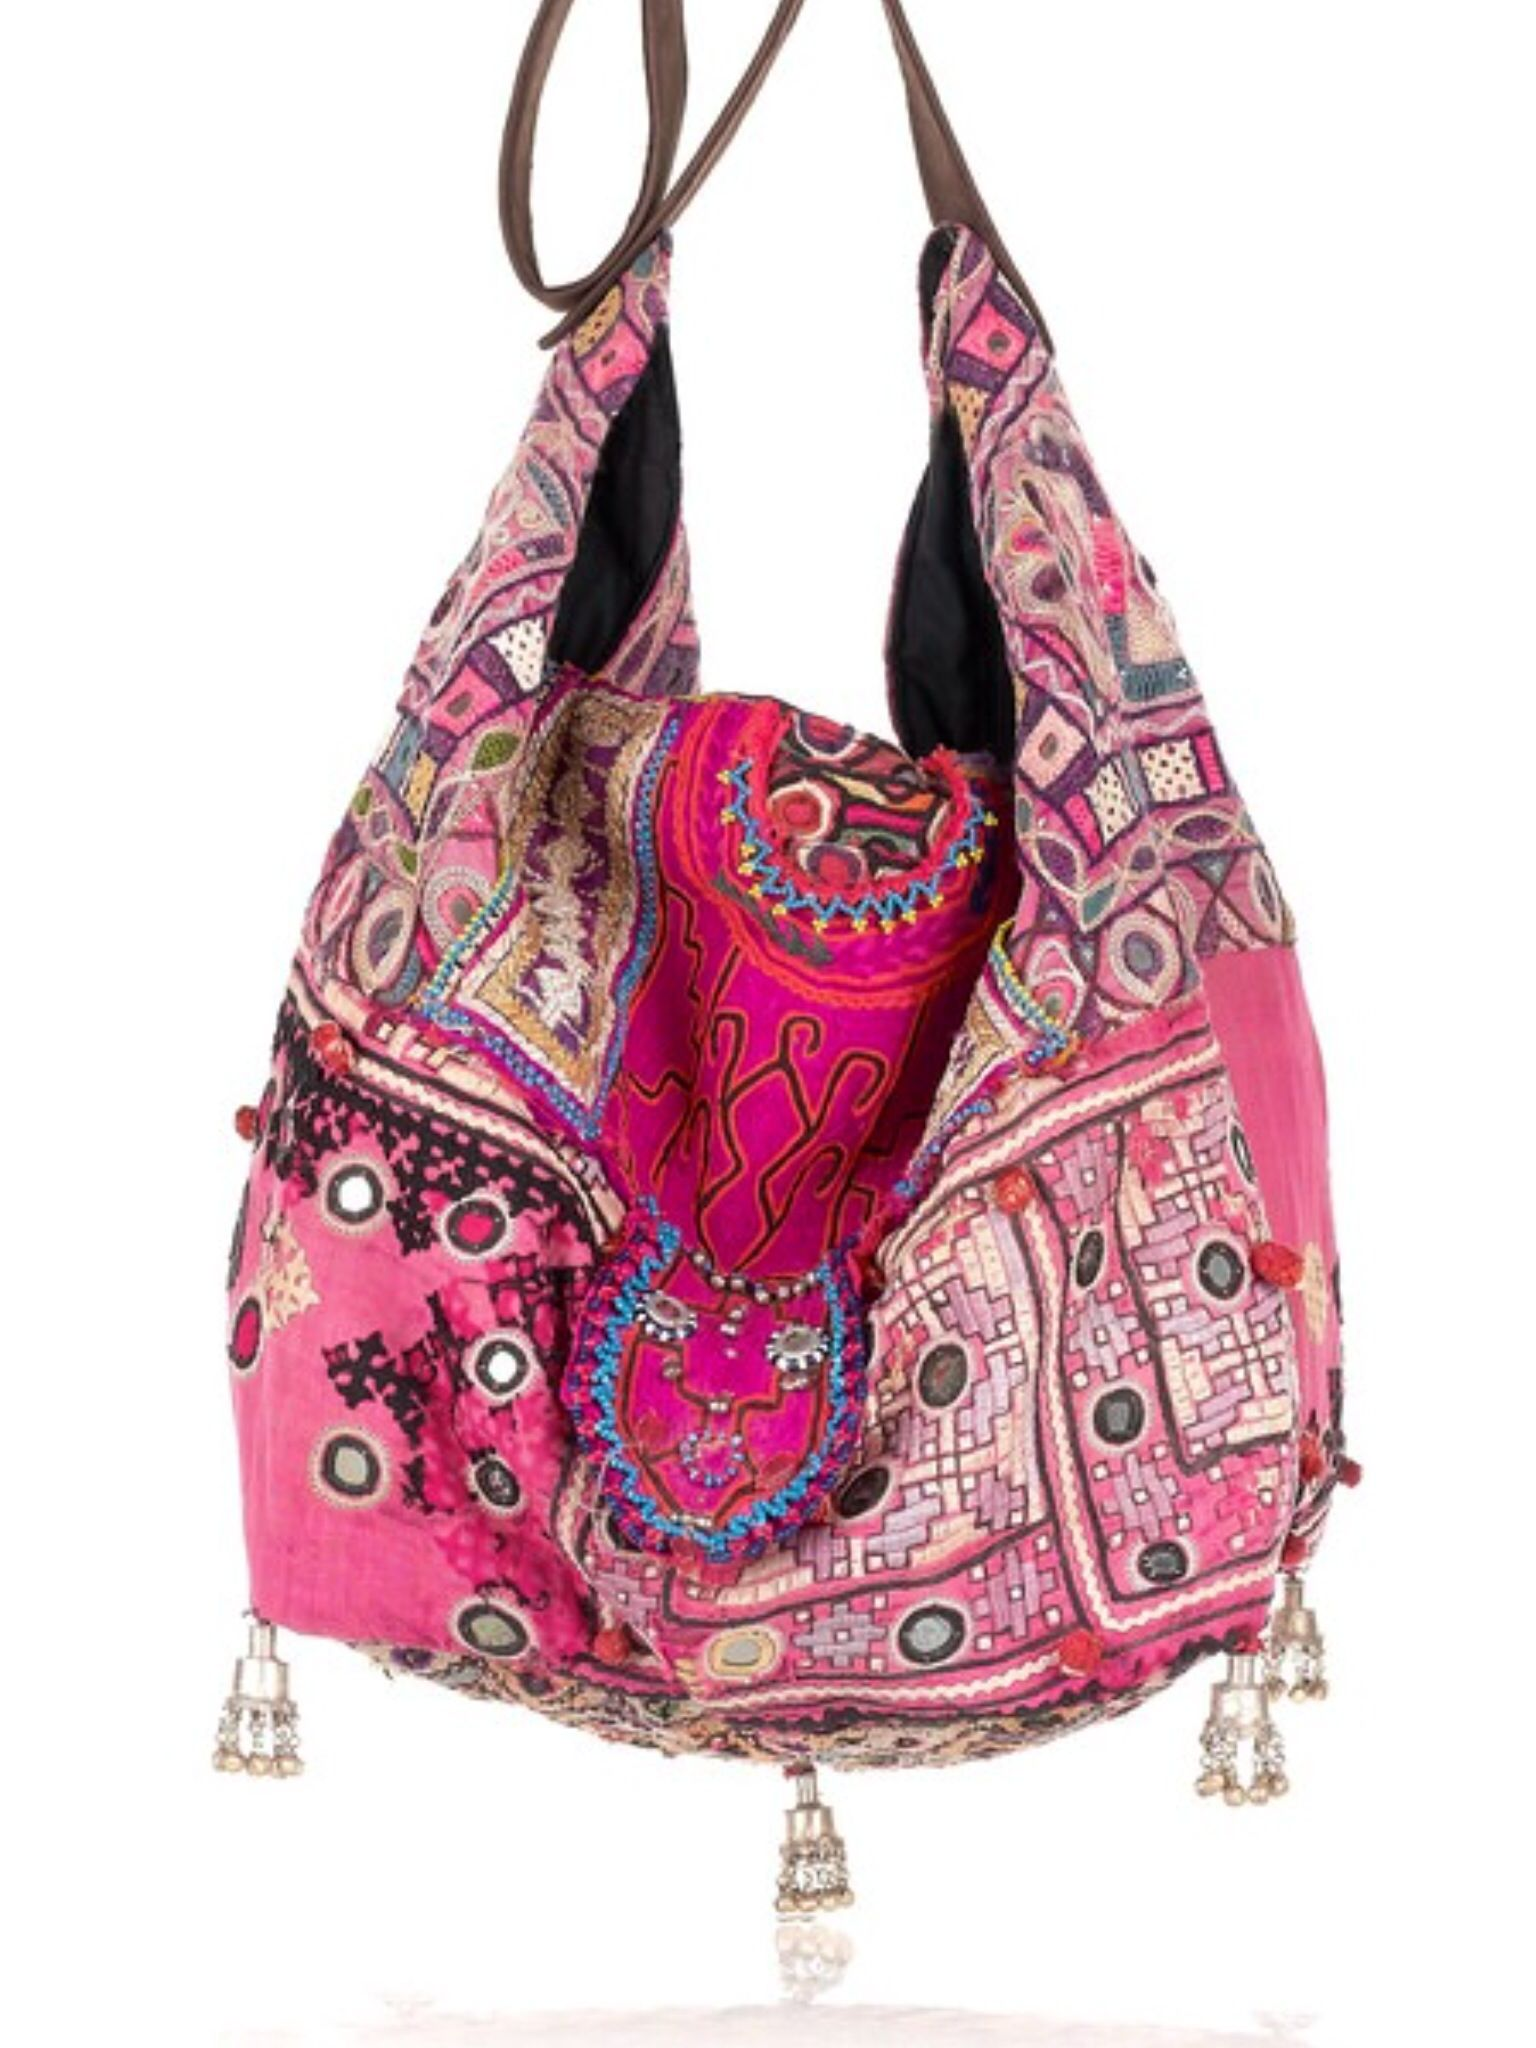 ☆ love a boho slouch bag... make from repurposed clothing   8c41c60e95b7d